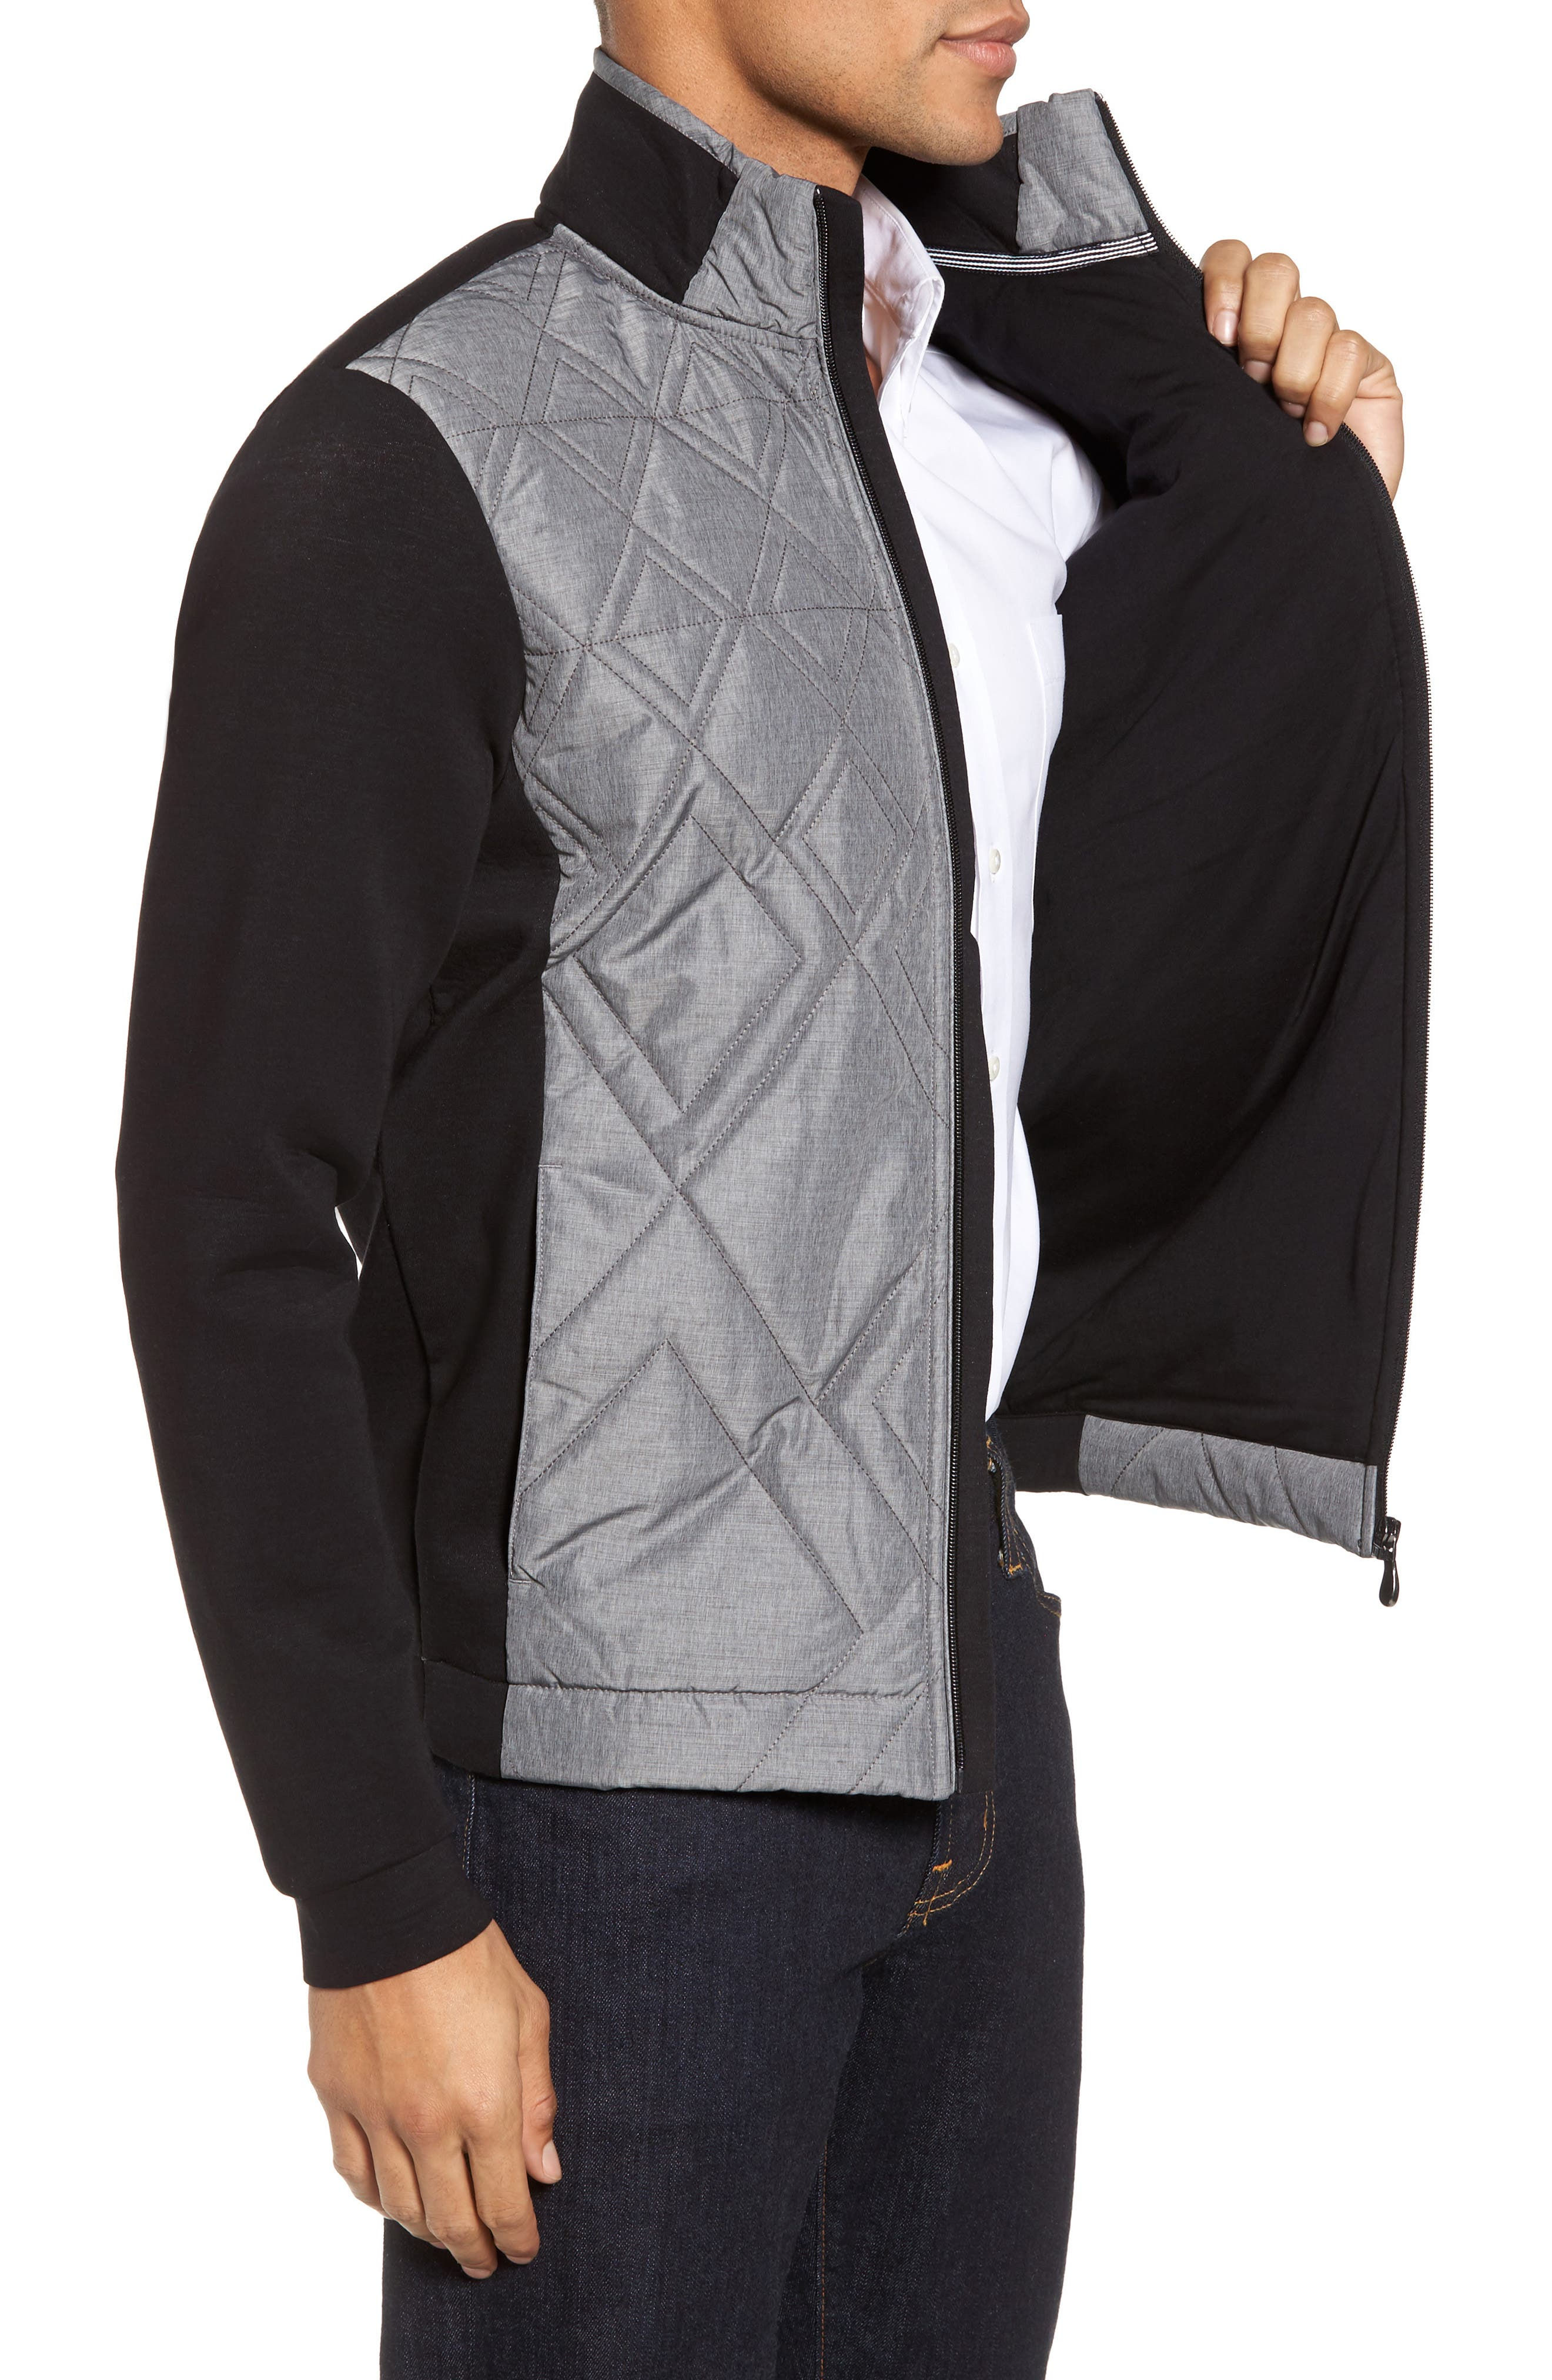 C-Pizzoli Quilted Jacket,                             Alternate thumbnail 3, color,                             Black